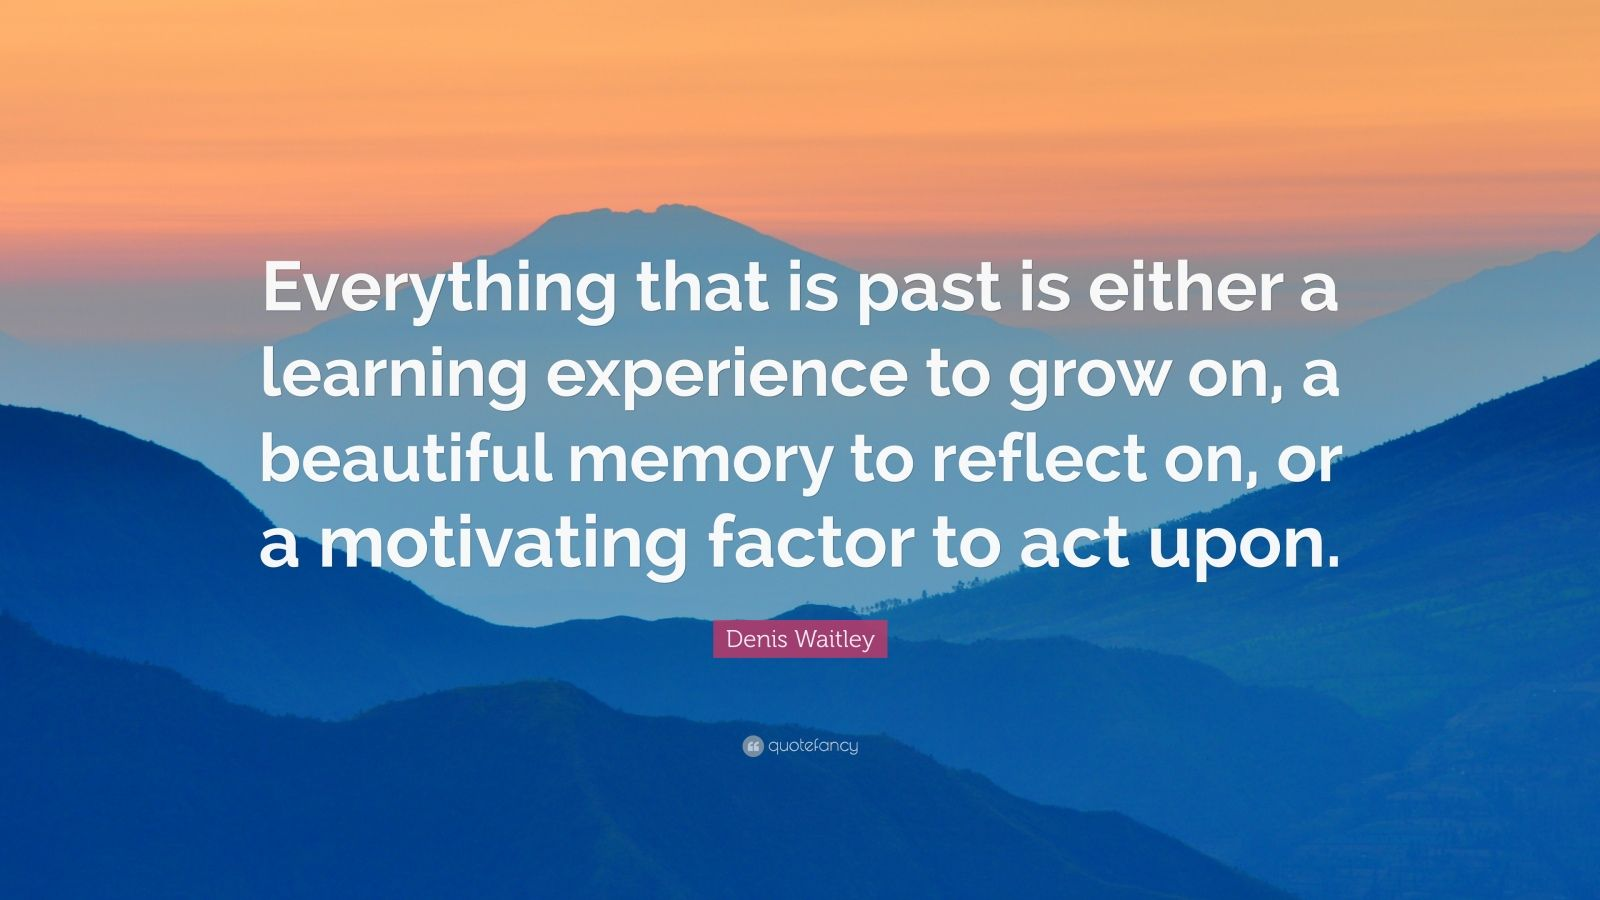 """Denis Waitley Quote: """"Everything that is past is either a learning experience to grow on, a beautiful memory to reflect on, or a motivating factor to act upon."""""""